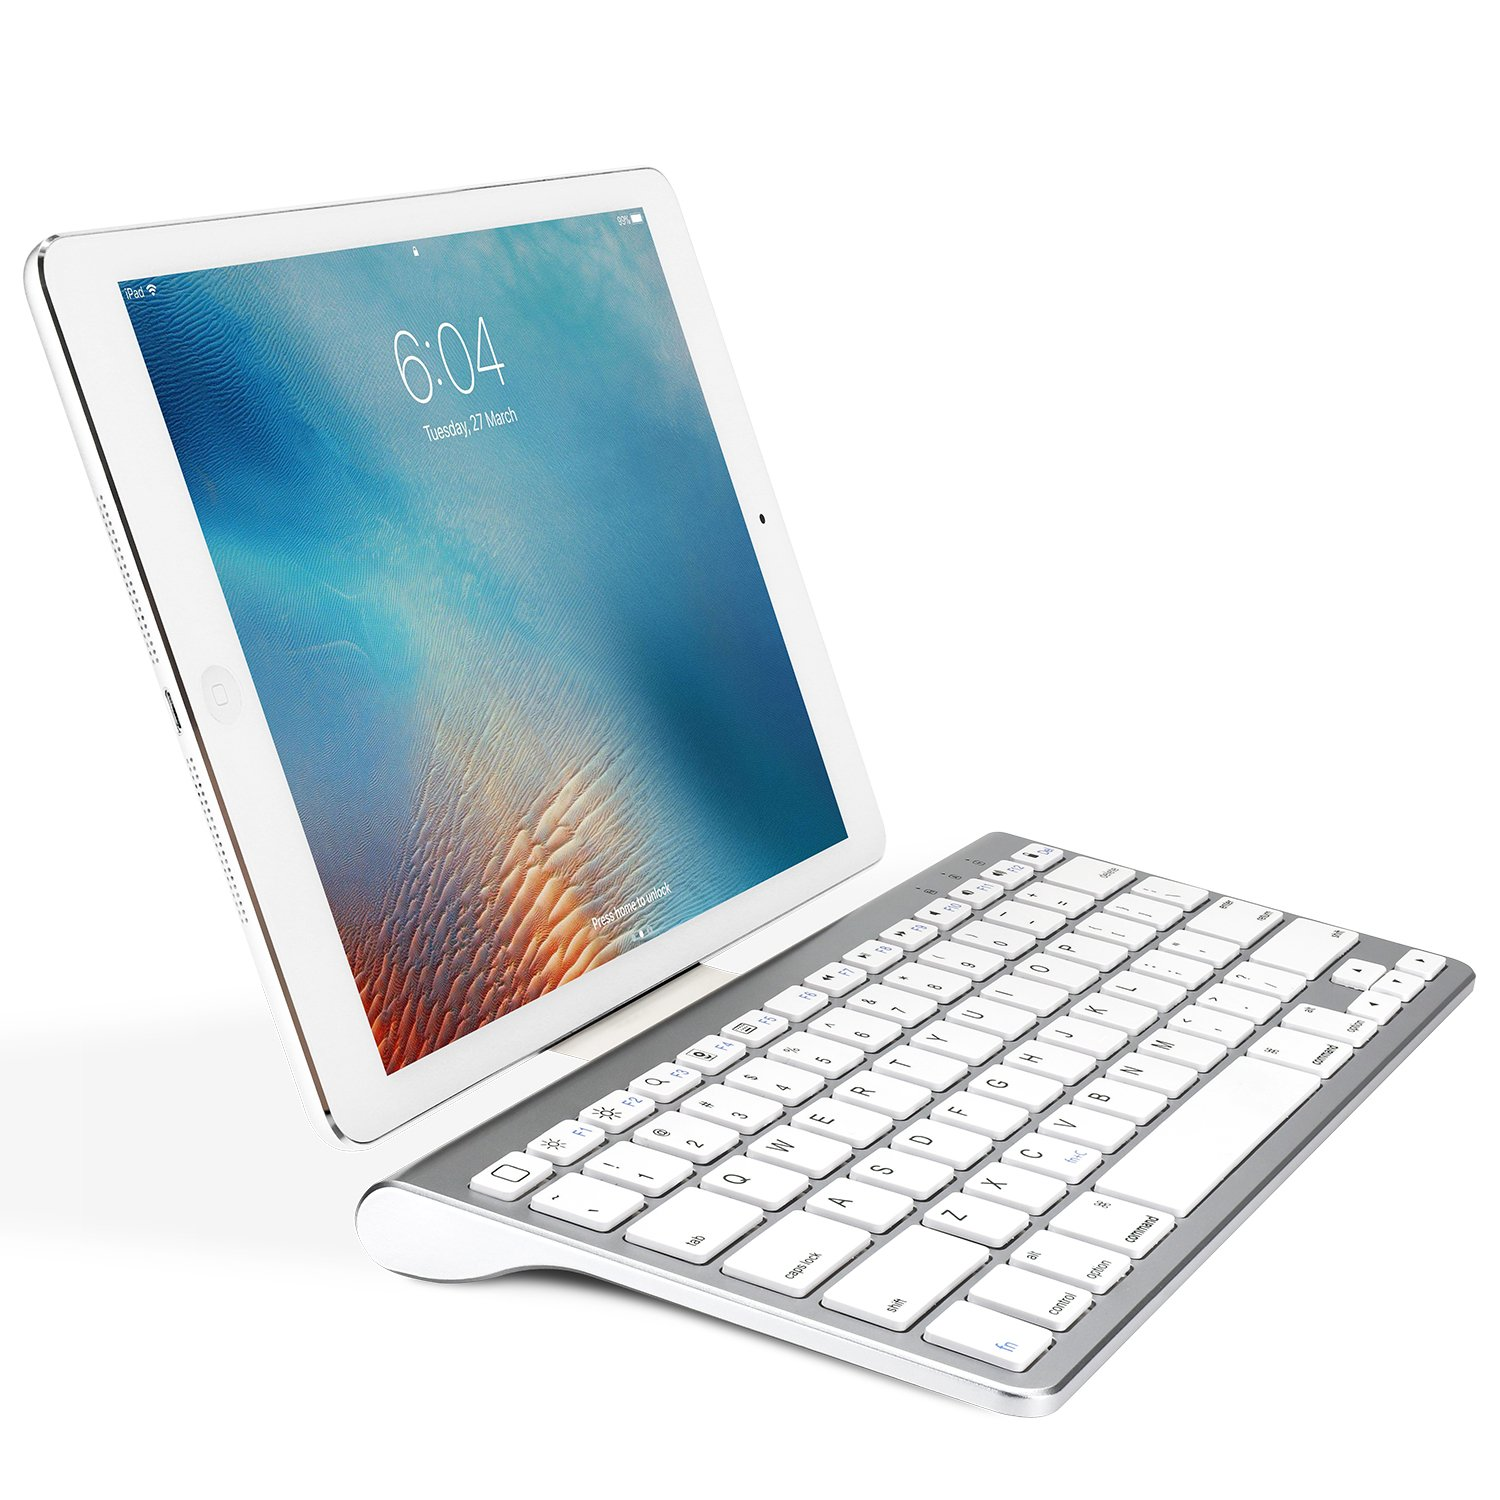 OMOTON Ultra-Slim Bluetooth Keyboard with Sliding Stand for New iPad 2018, iPad 2017, iPad Pro, iPad Mini 4/3/2/1, iPad 4/3/2, iPhone 8/8 Plus, iPhone X and Other Bluetooth Enabled Devices, White